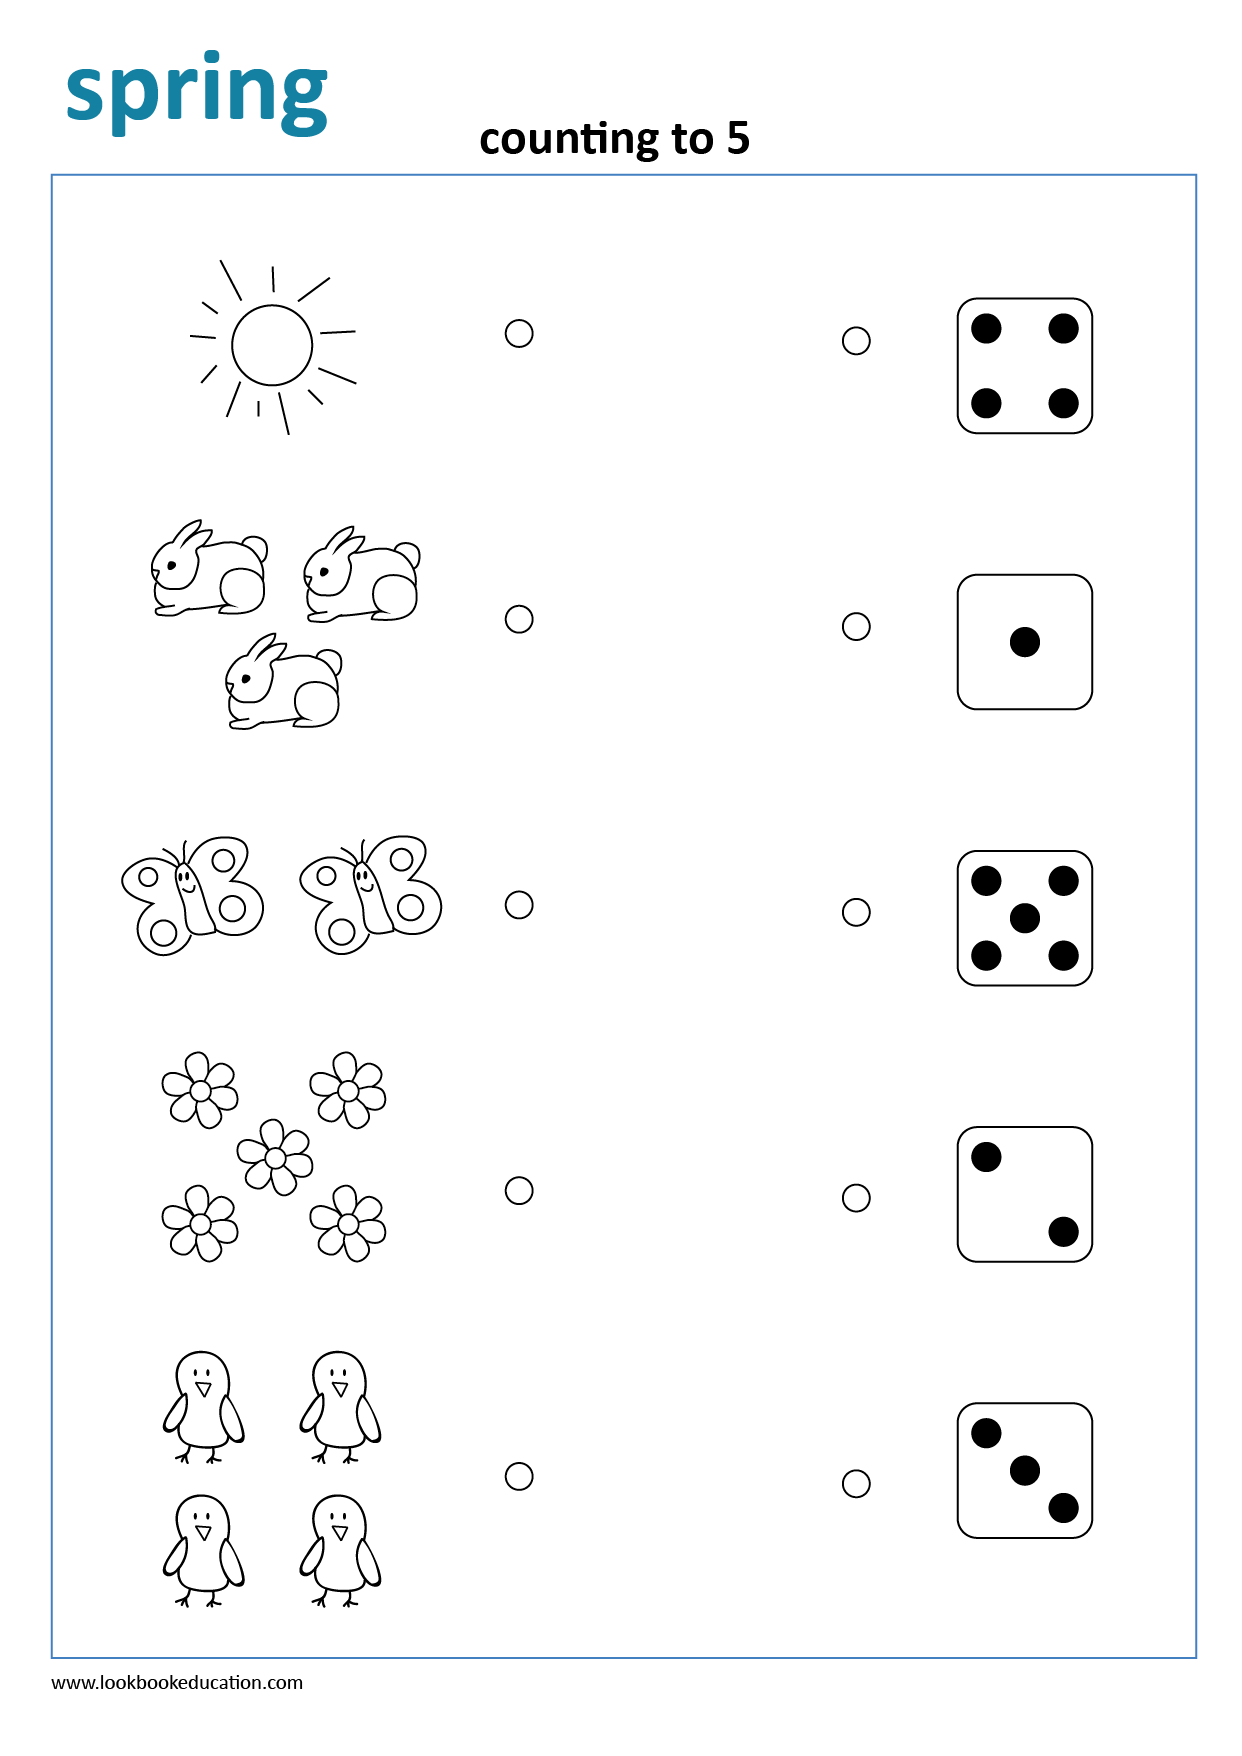 Worksheet Counting Dice Spring